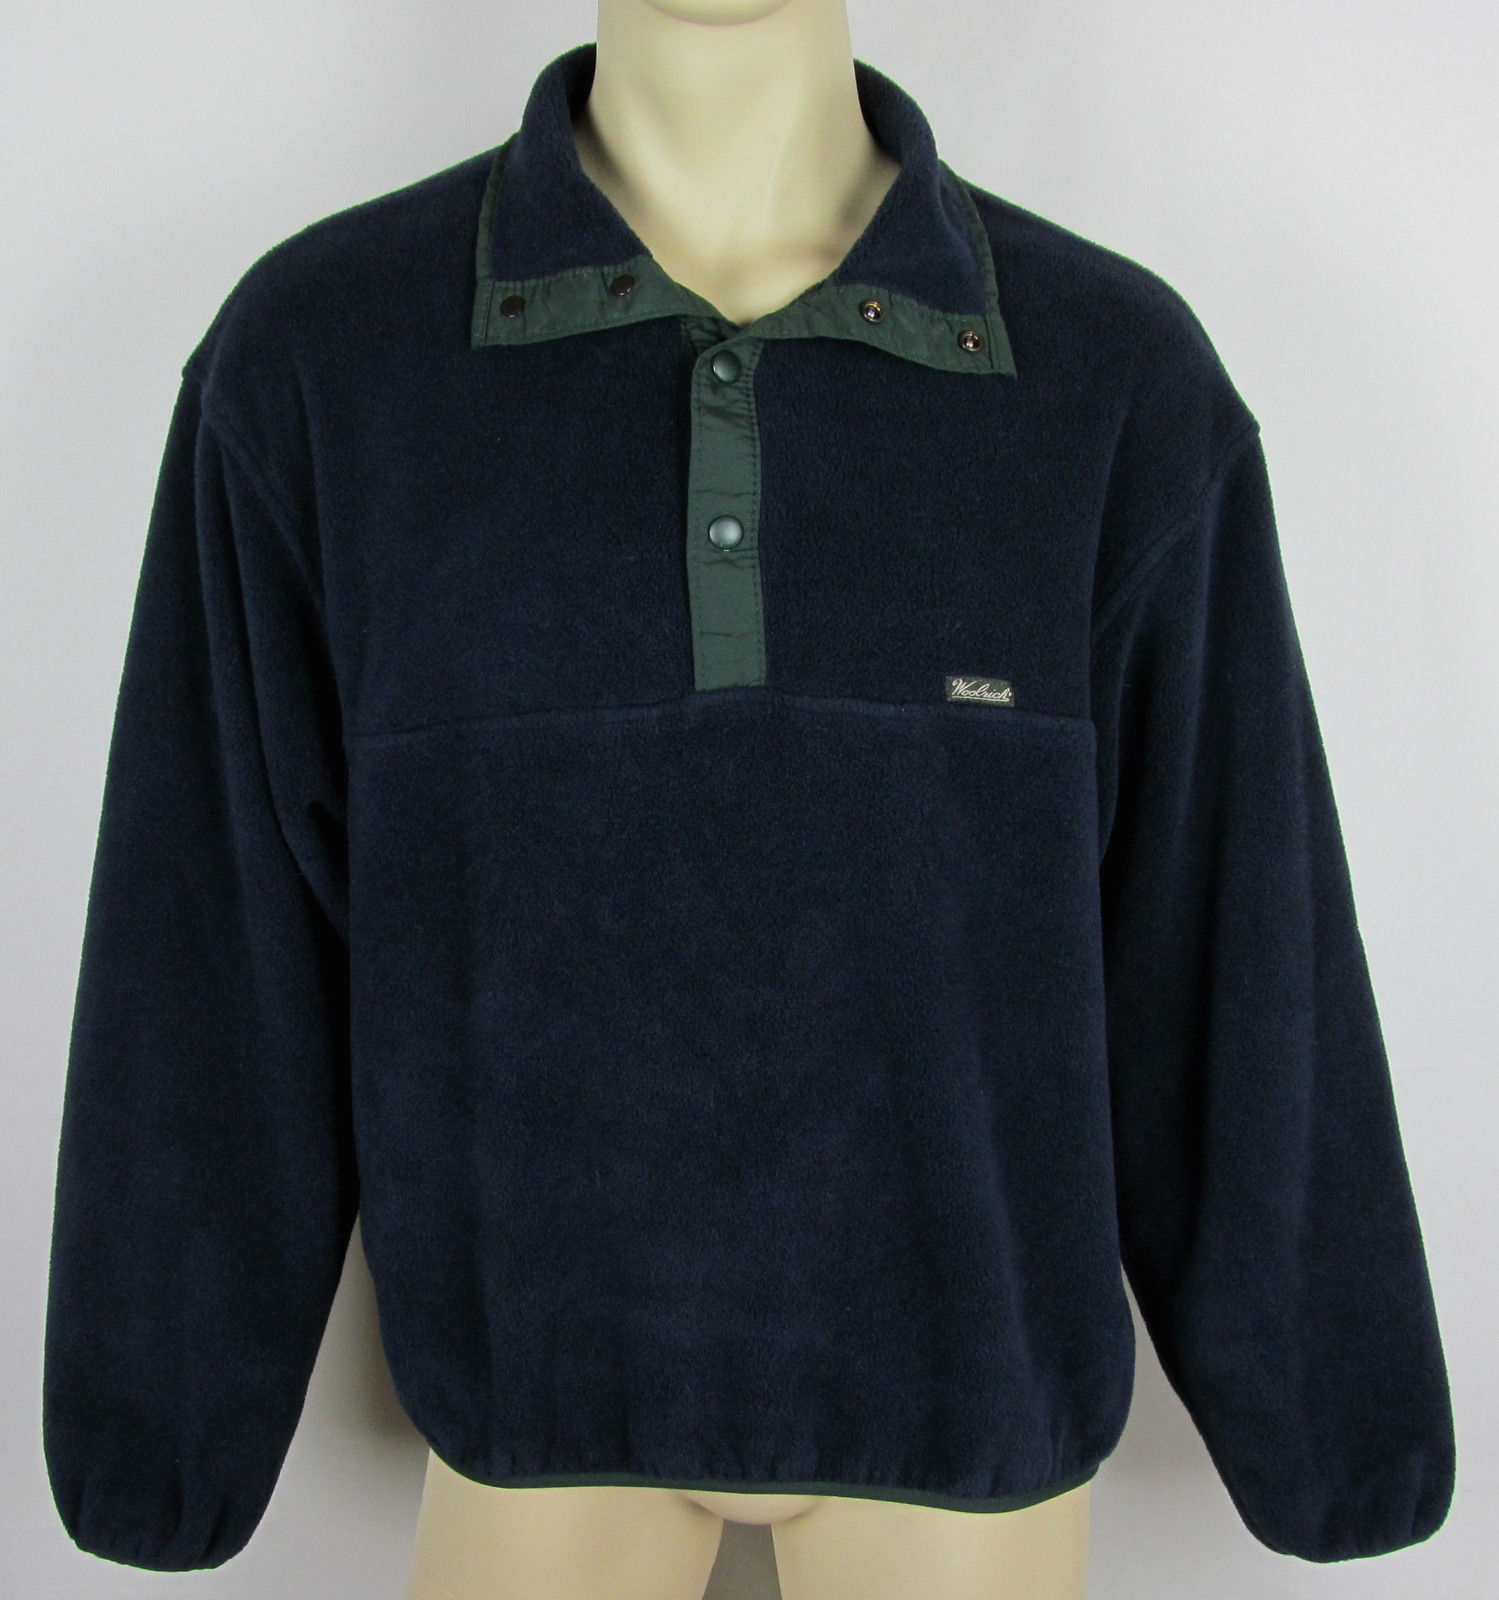 Woolrich Snap-T fleece jacket USA Made Navy Blue Mens Size L image 1